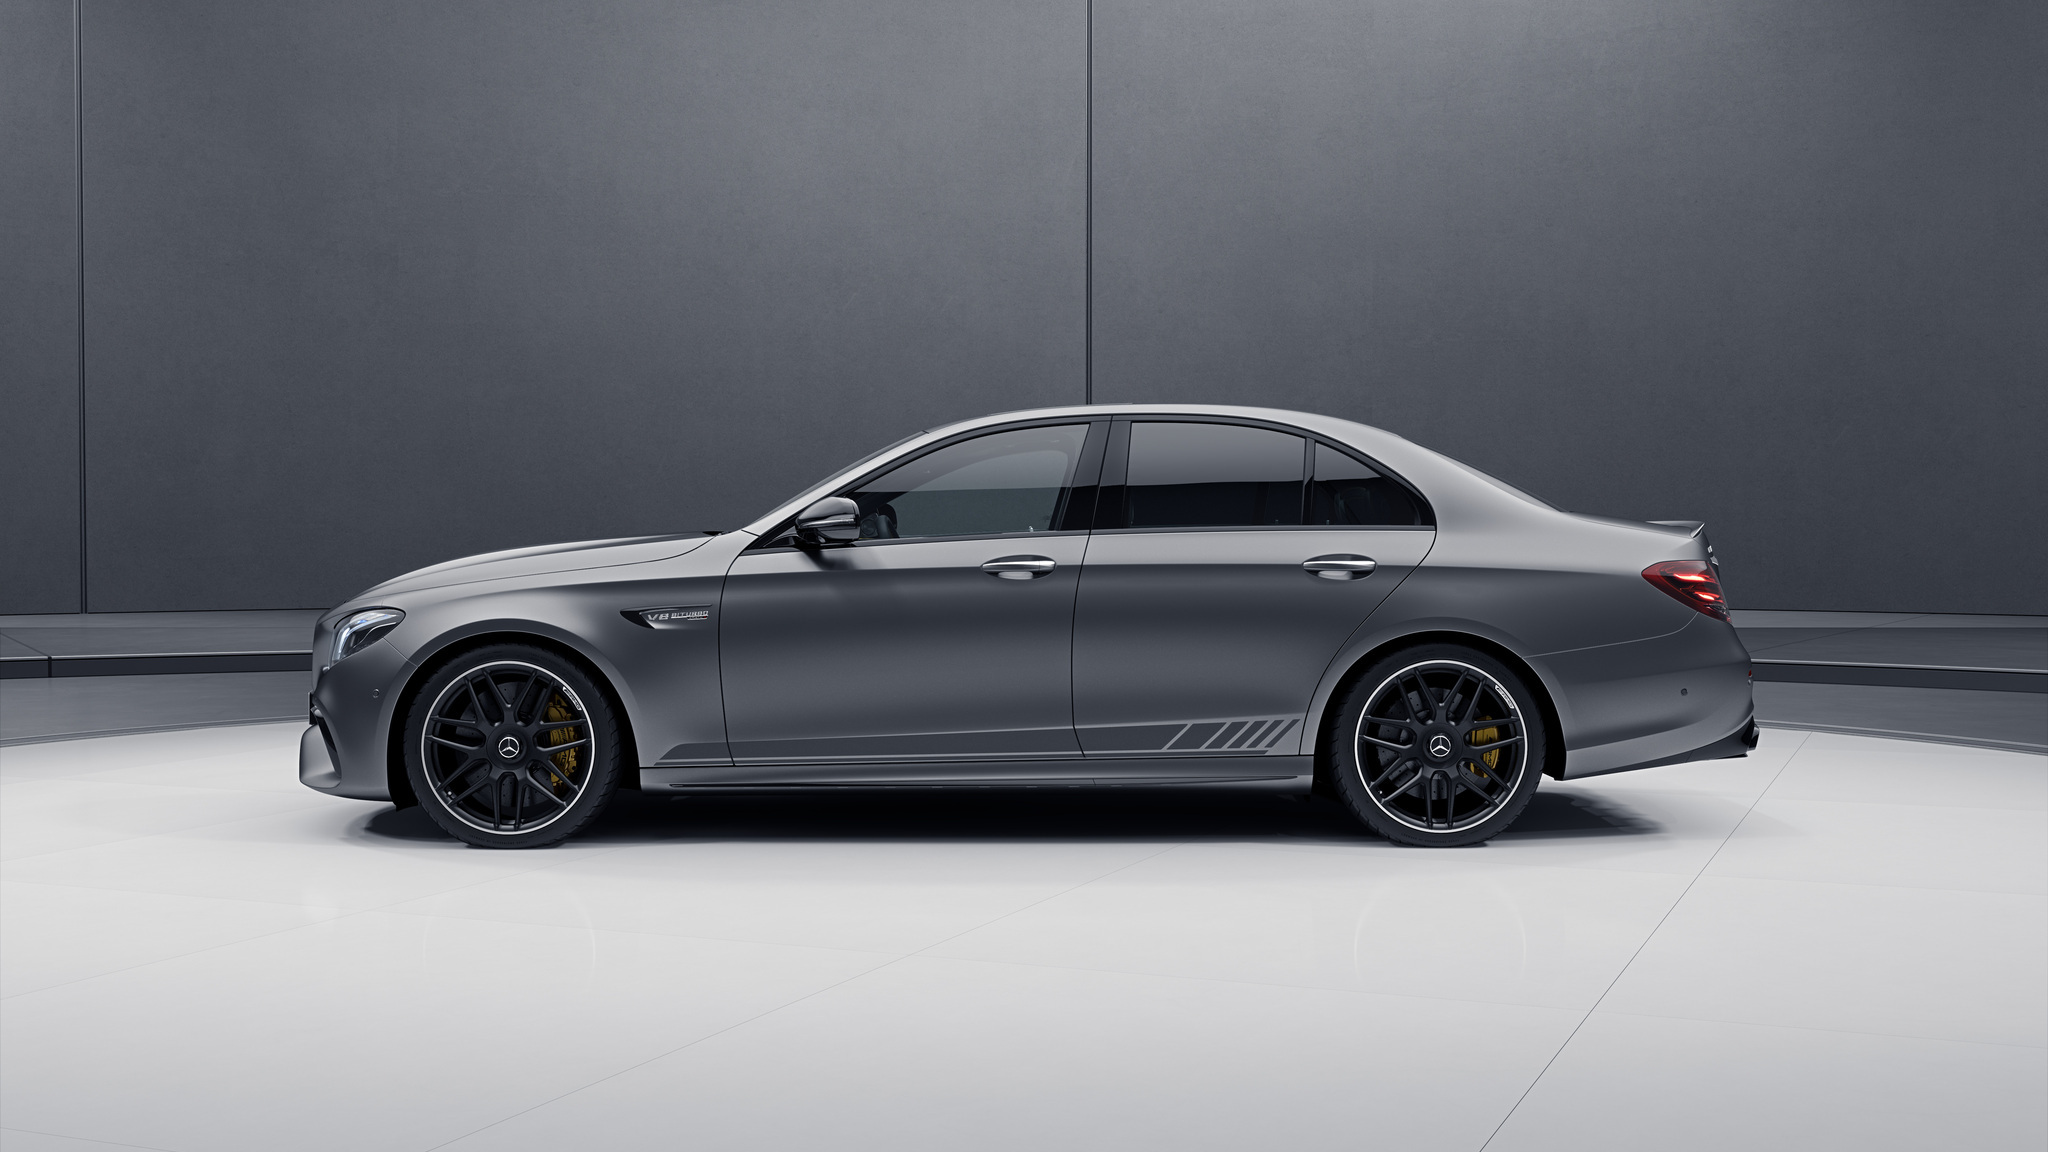 Mercedes Amg E 63 S Amg 4matic Edition 1 Who Dares